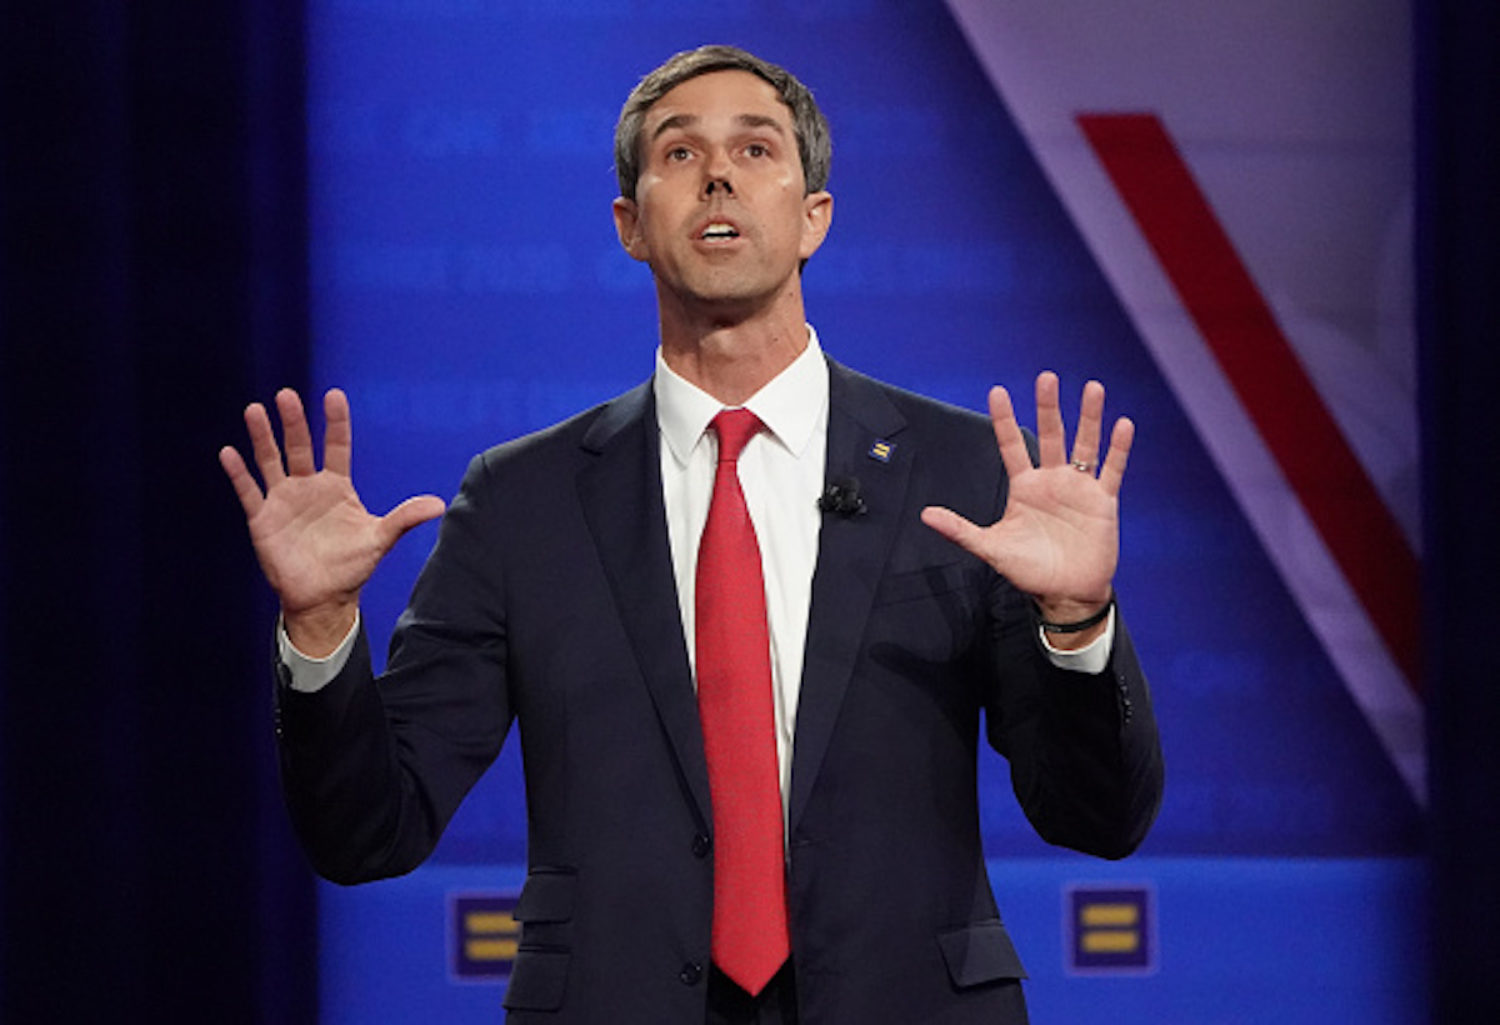 LOS ANGELES, CALIFORNIA - OCTOBER 10: Democratic presidential candidate, former U.S. Rep. Beto O'Rourke (D-TX) speaks at the Human Rights Campaign Foundation and CNN presidential town hall focused on LGBTQ issues on October 10, 2019 in Los Angeles, California. It is the first Presidential event broadcast on a major news network focused on LGBTQ issues. (Photo by Mario Tama/Getty Images)